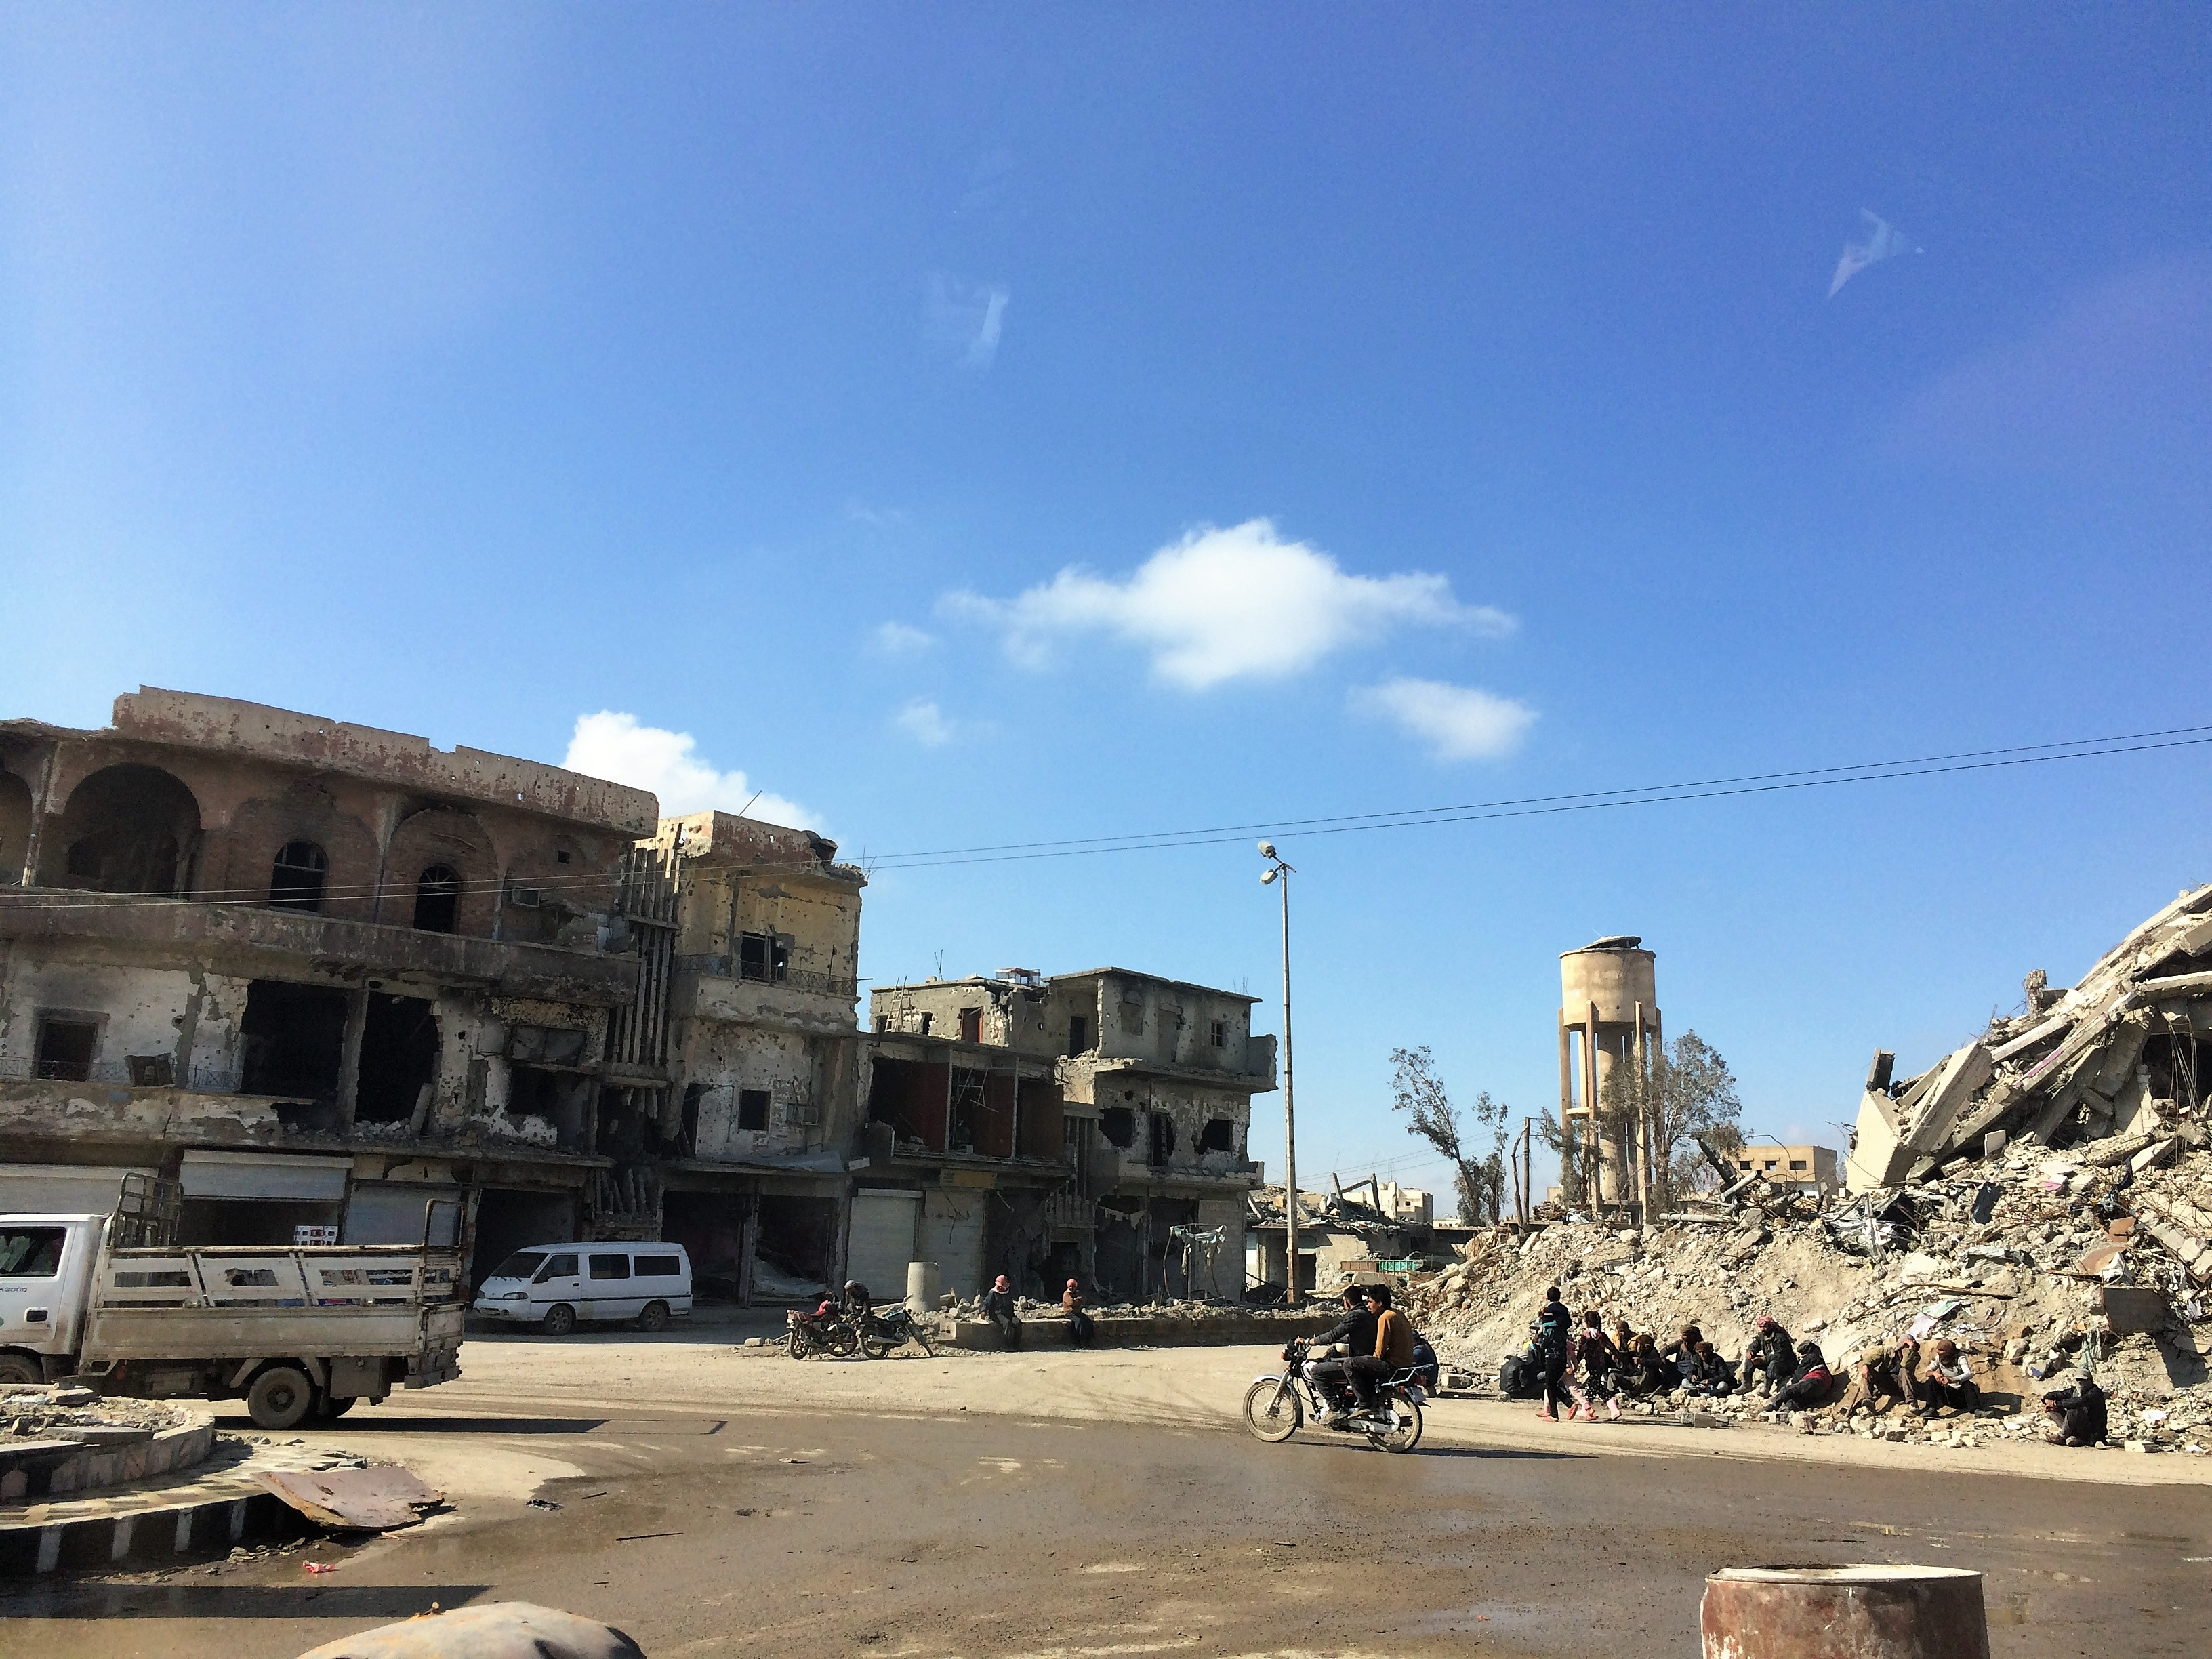 Access and movement has improved in most areas of Ar-Raqqa. ©REACH/2018